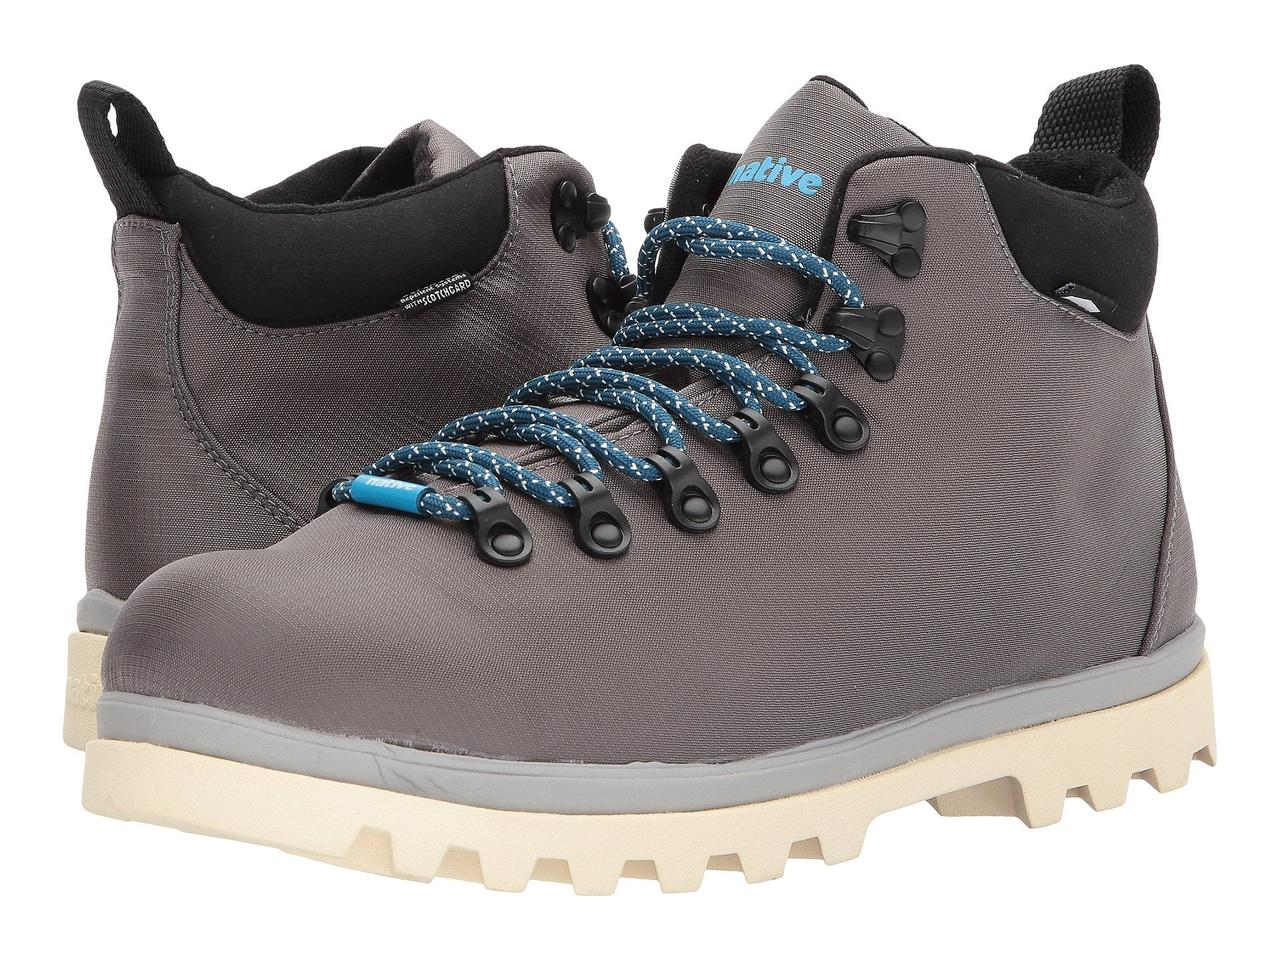 67c40c2b6 Ботинки/Сапоги (Оригинал) Native Shoes Fitzsimmons Treklite Dublin  Grey/Pigeon Grey/